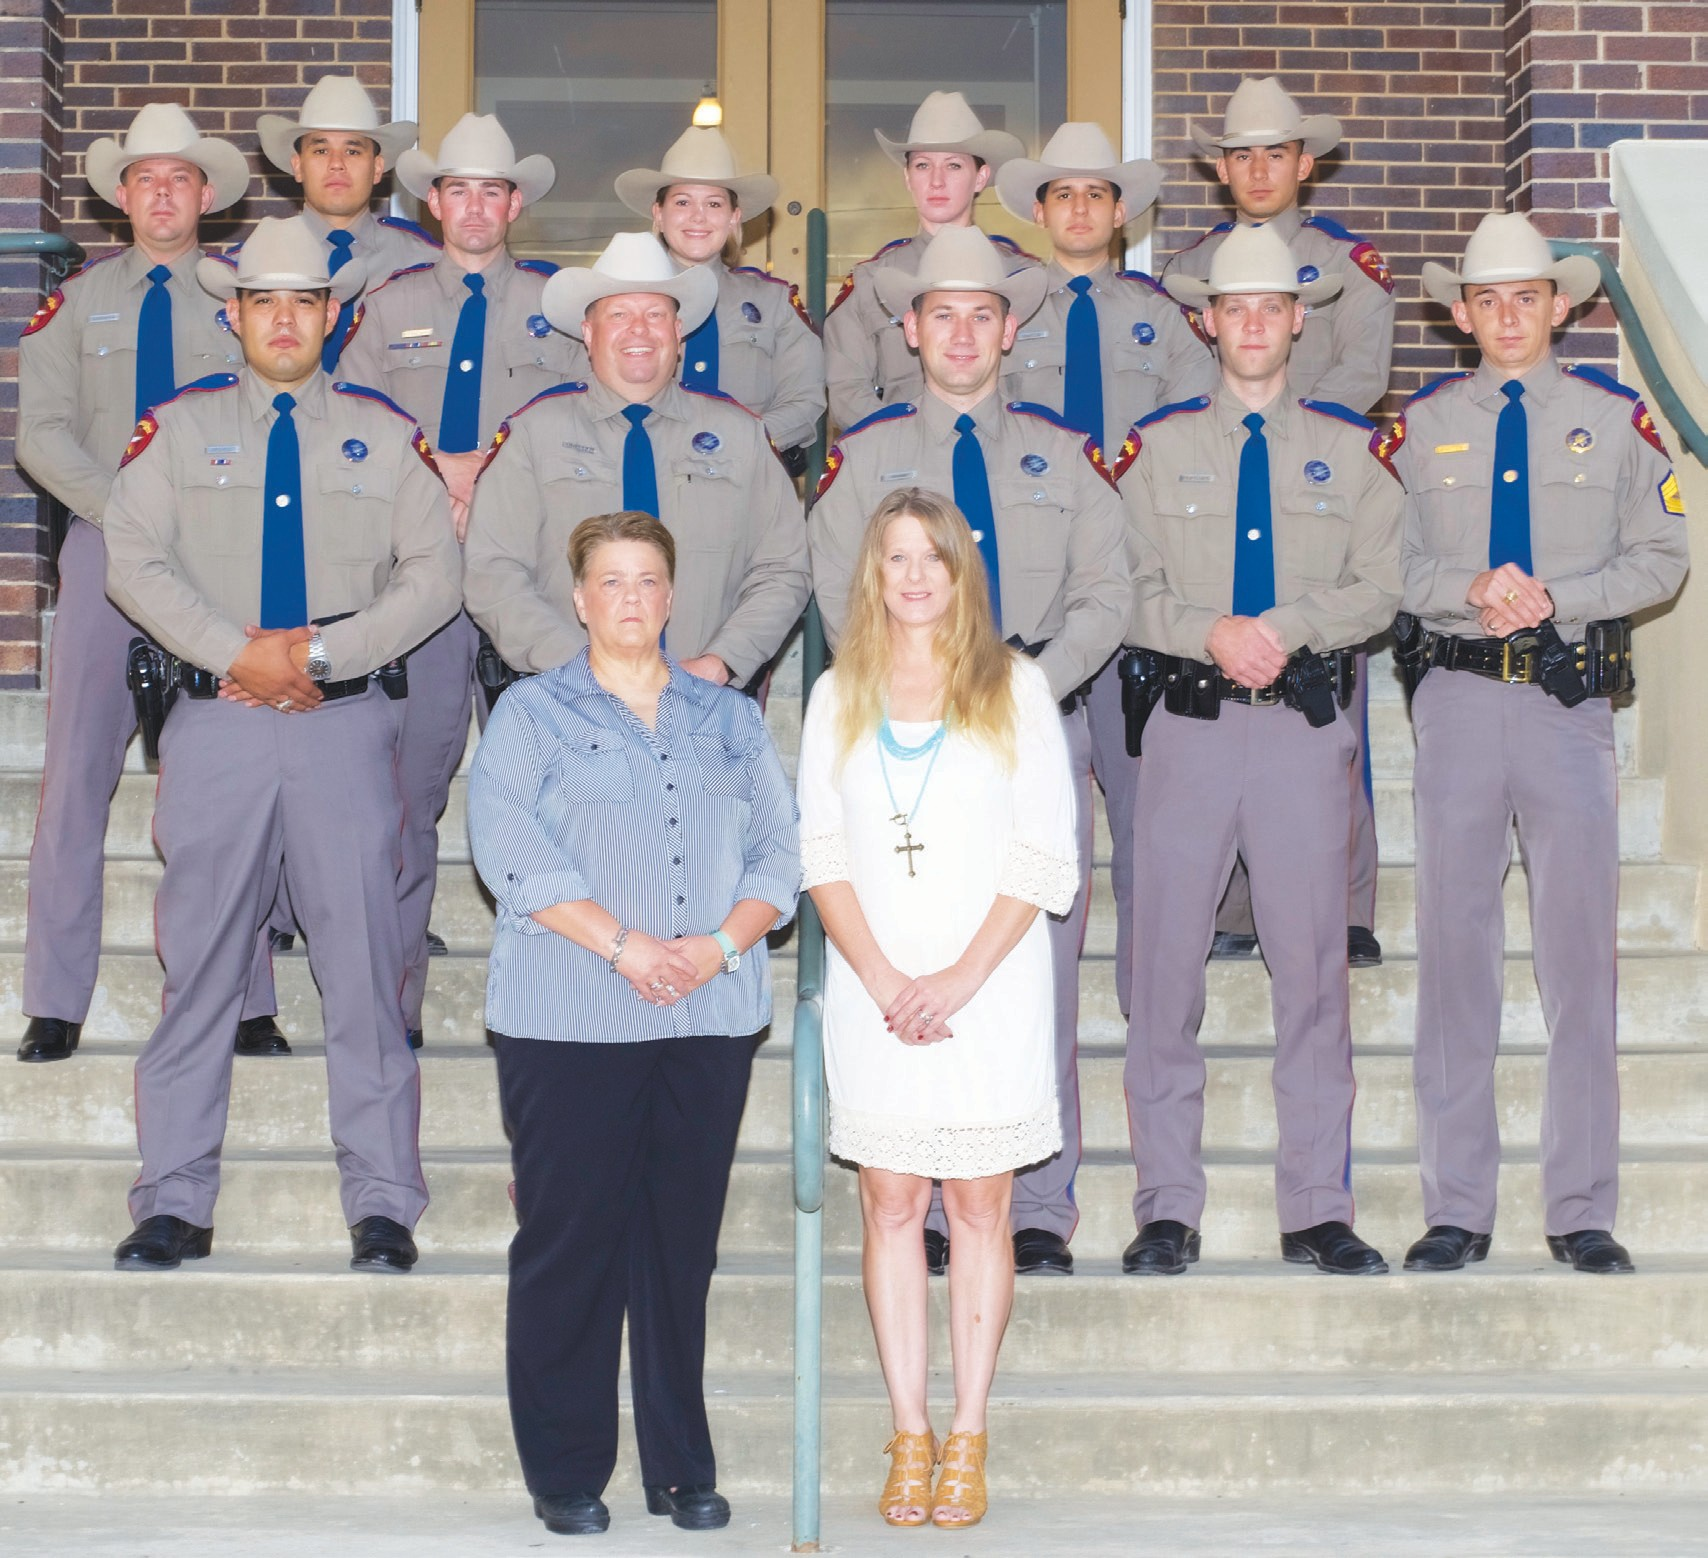 Gathering for a photo at the Atascosa County Courthouse in Jourdanton are Troopers with the Texas Department of Public Safety Highway Patrol Service. Left to right are: front row- Betty Shannon (receptionist/clerk), Rachel Ogden (area secretary); second row- Troopers: J. Perez, W. Rogers, D. Vaughan, B. Parsons and Sgt. R. Bratten; third row- Troopers: K. Harriman, D. Patch, S. Rugh, J. Springer, and A. Rincon; fourth row- top left- Trooper M. Ruiz and top right- Trooper A. Cantu. Unavailable for photo was Cpl. M.A. Ramos who was at a border operation.